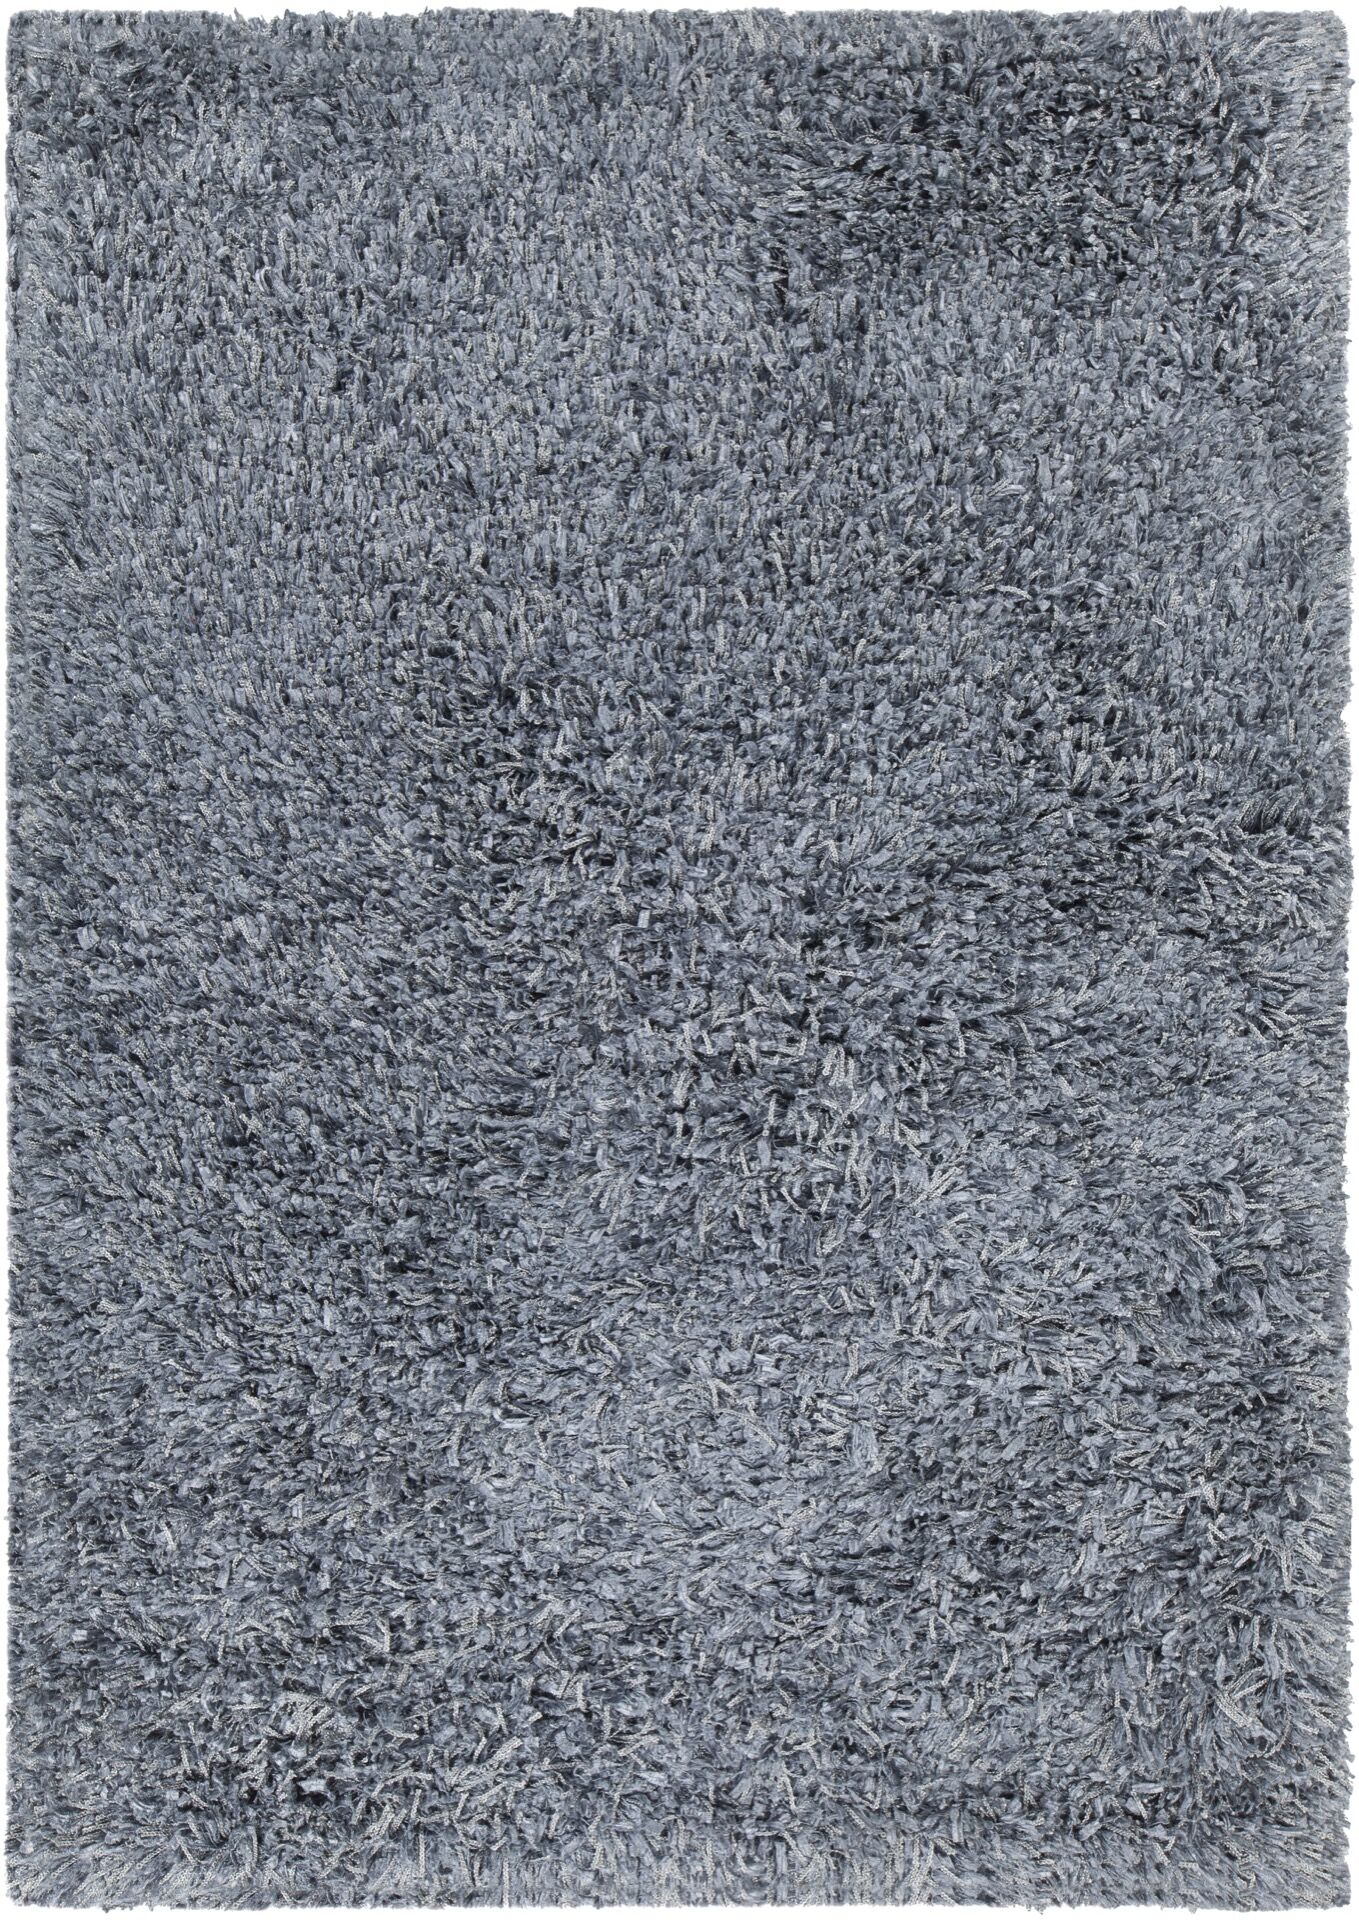 Funkhouser Hand-Woven Gray Area Rug Rug Size: 7'9